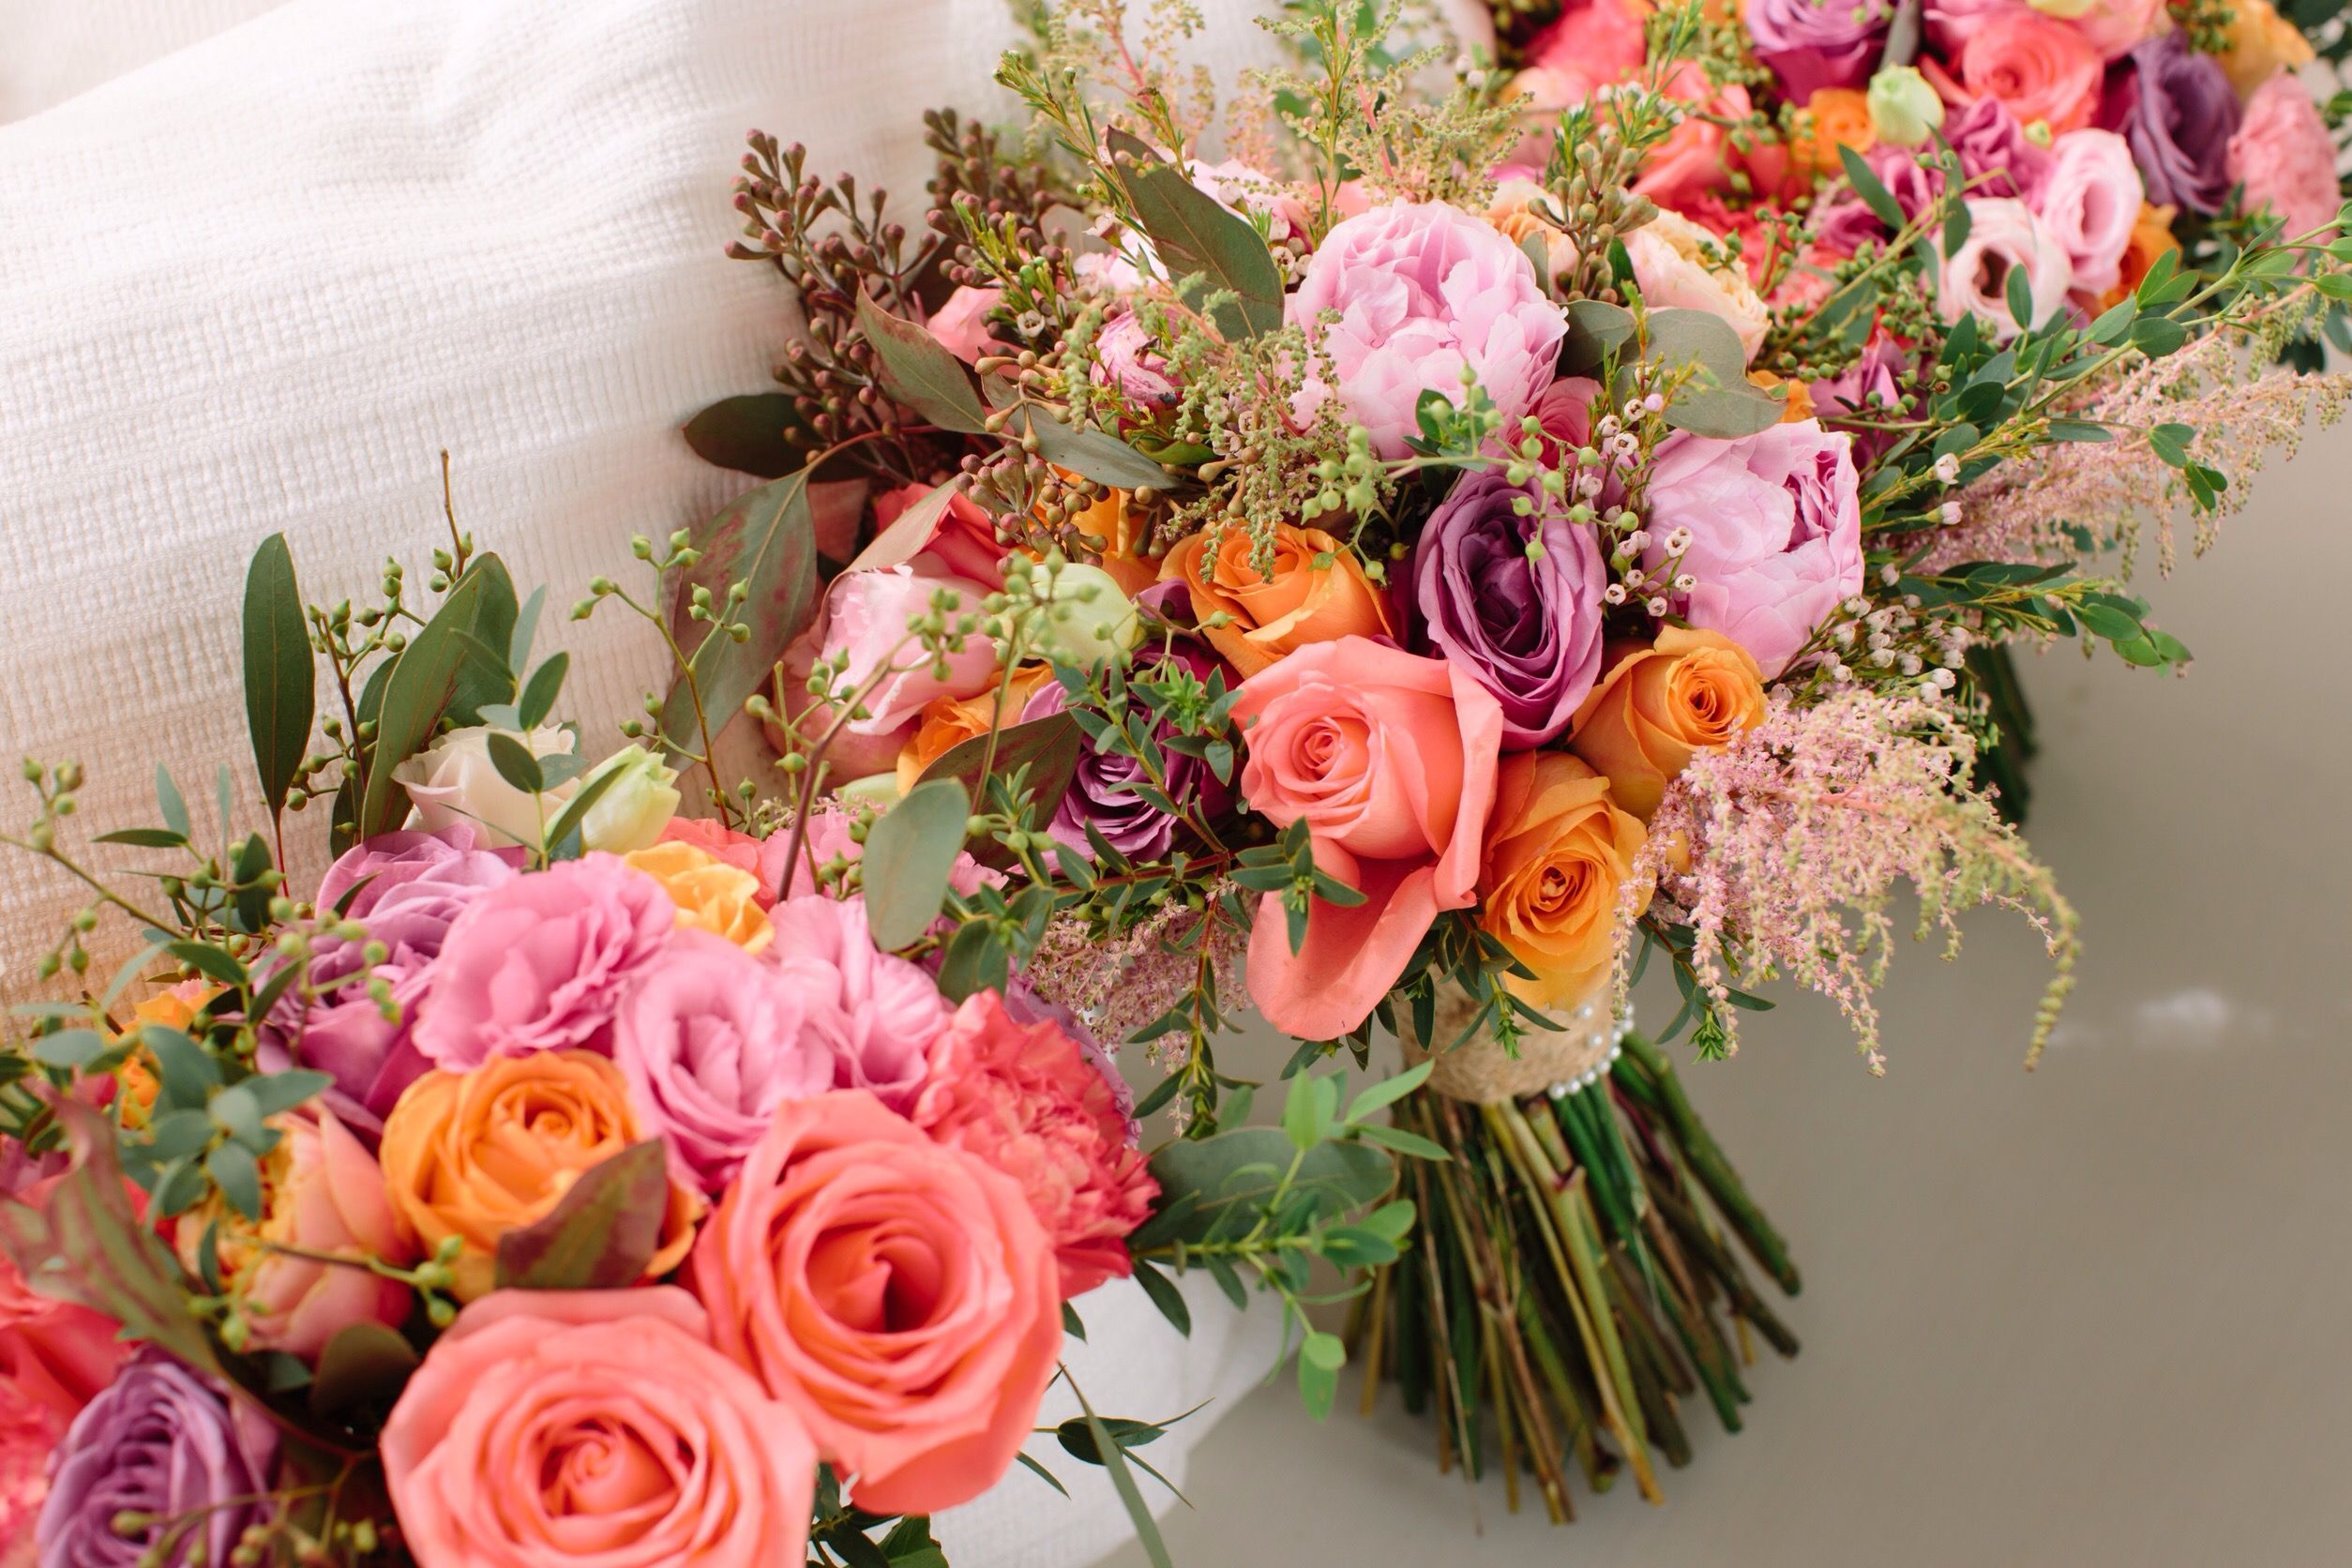 Luxury bouquet flower by candlebirdy boutique flowers luxury bouquet flower by candlebirdy boutique flowers candlebirdyboutiqueflowers line izmirmasajfo Choice Image